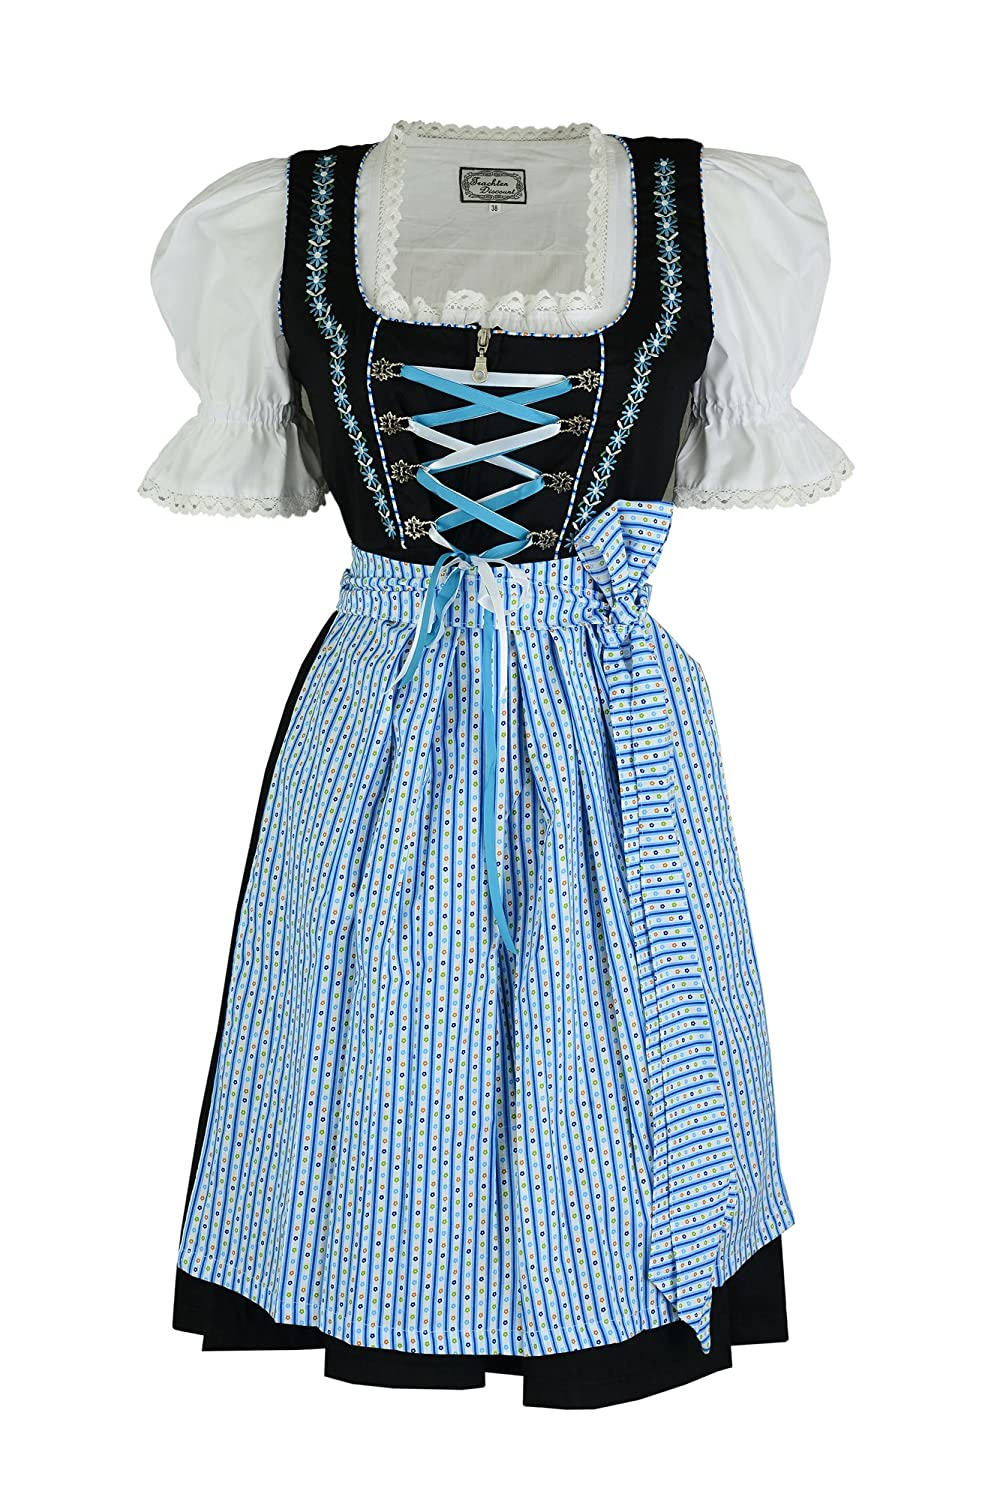 Tausendsch?n Dirndloutlet Black 3 Pieces Dirndl with Blouse and Skirt Light Blue